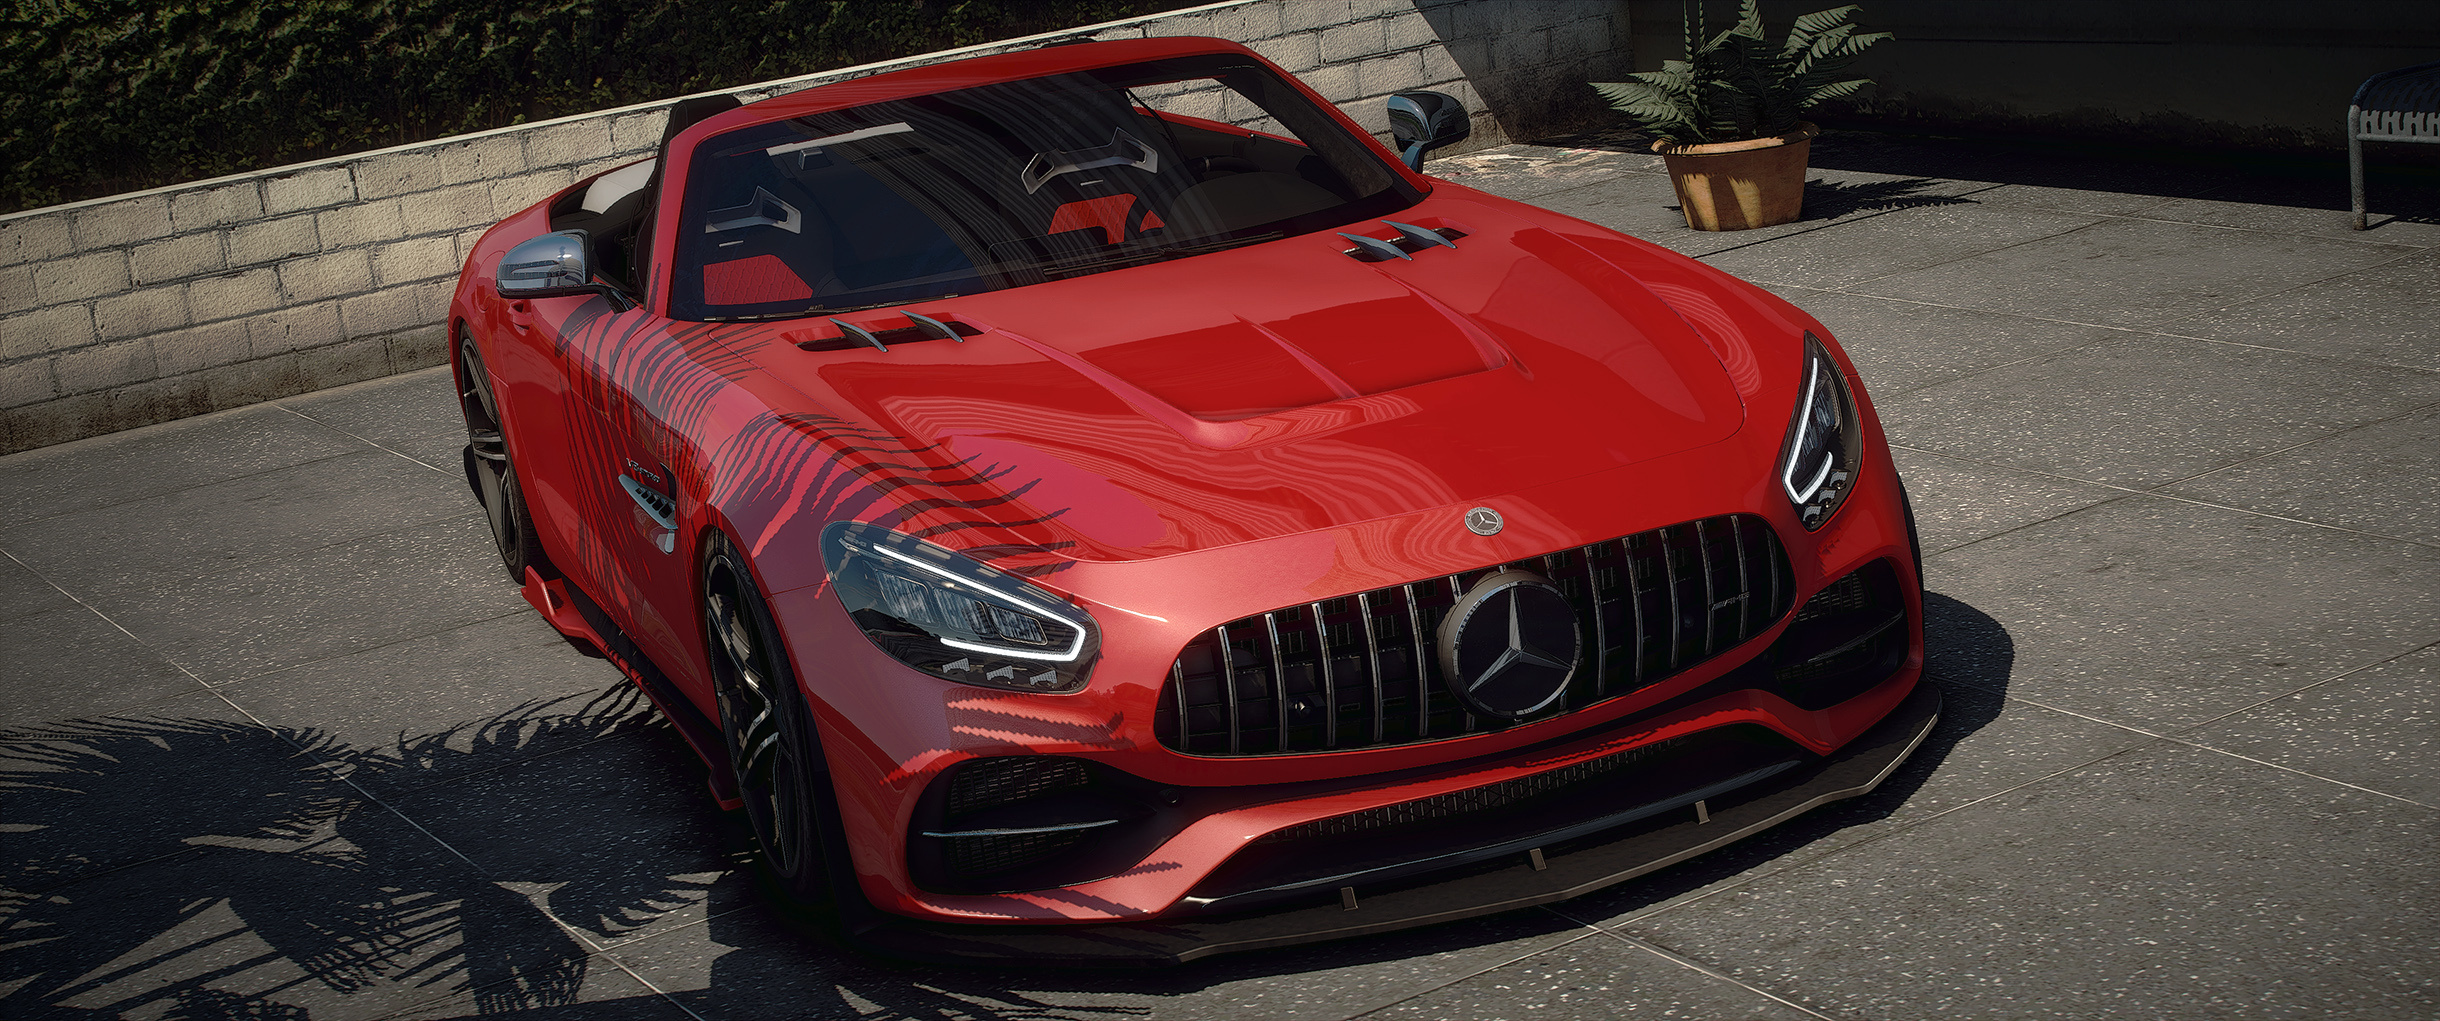 Mercedes Benz Amg Gt R C Roadster Add On Extras Wheels Tuning Lods Gta5 Mods Com